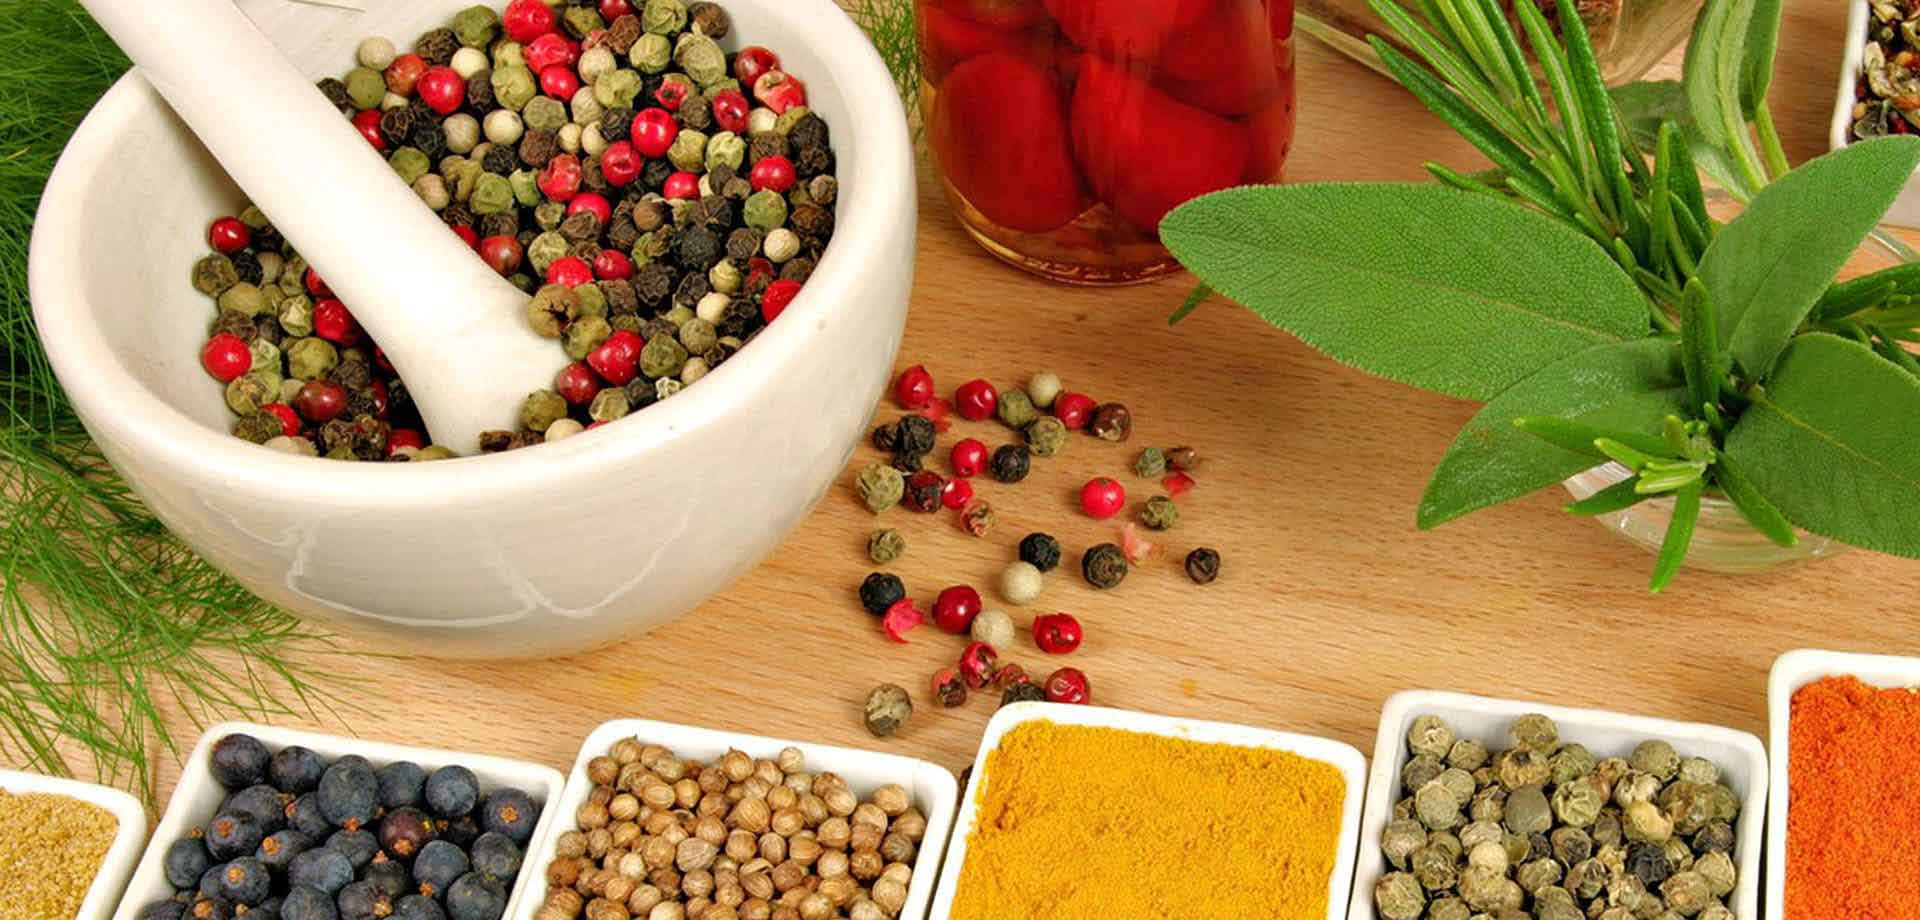 Herbal Creations - Herbal Extracts Manufacturers and Suppliers